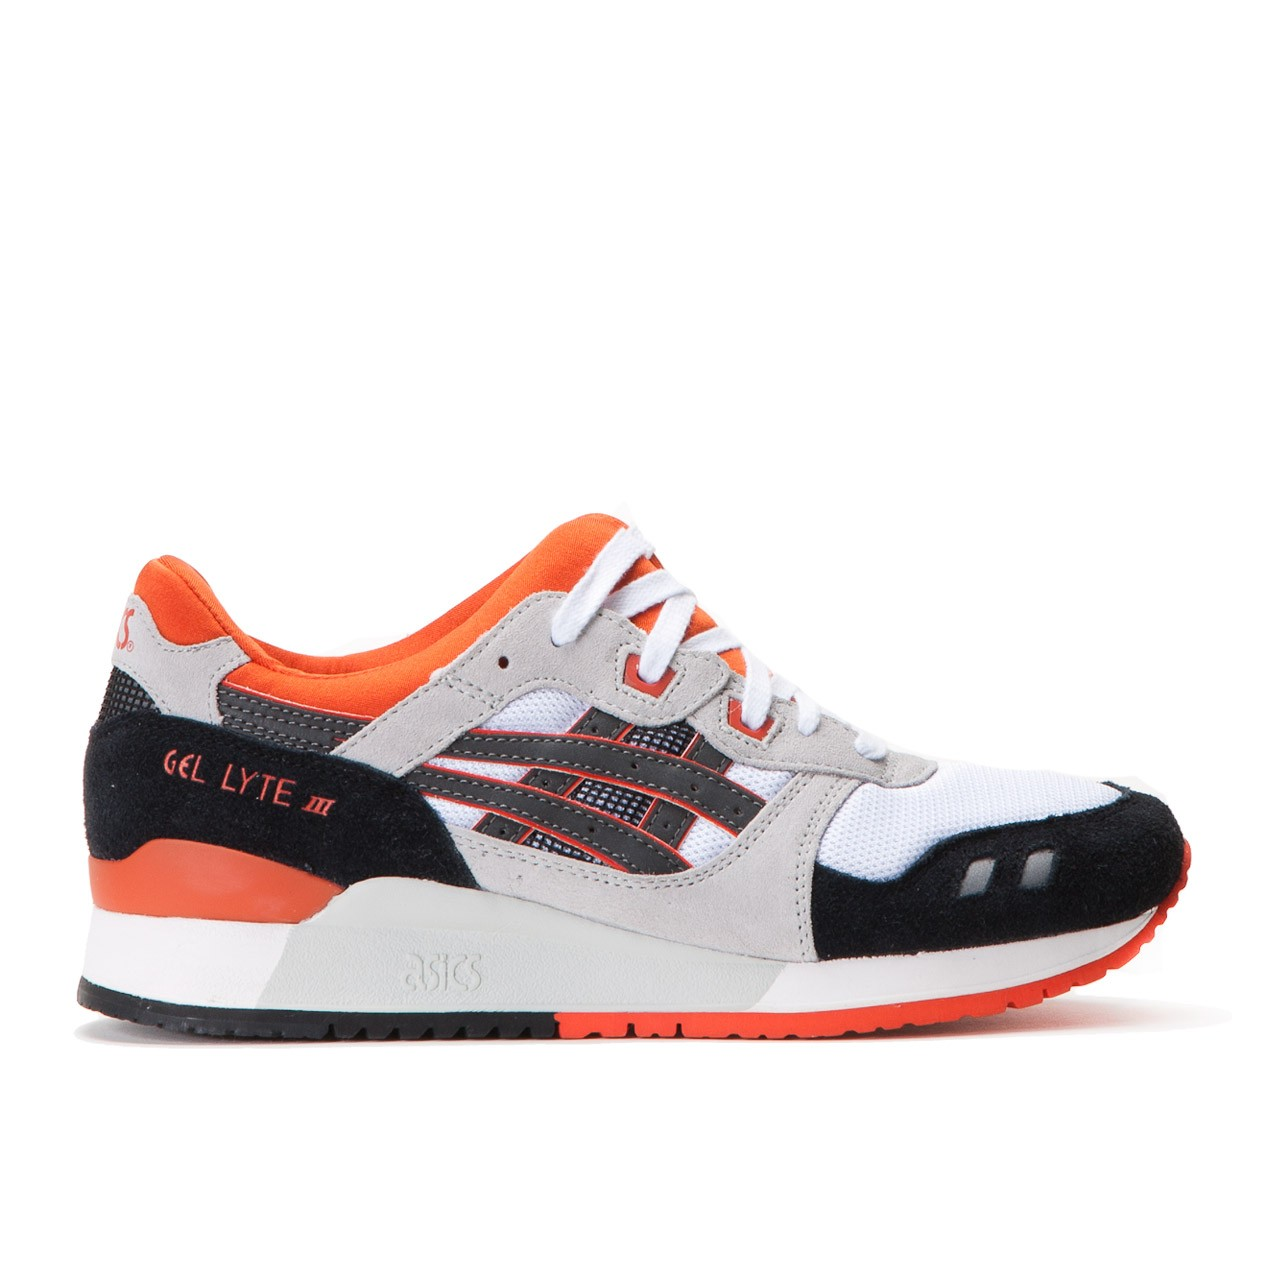 asics-gel-lyte-iii-white-black-h518n-0190